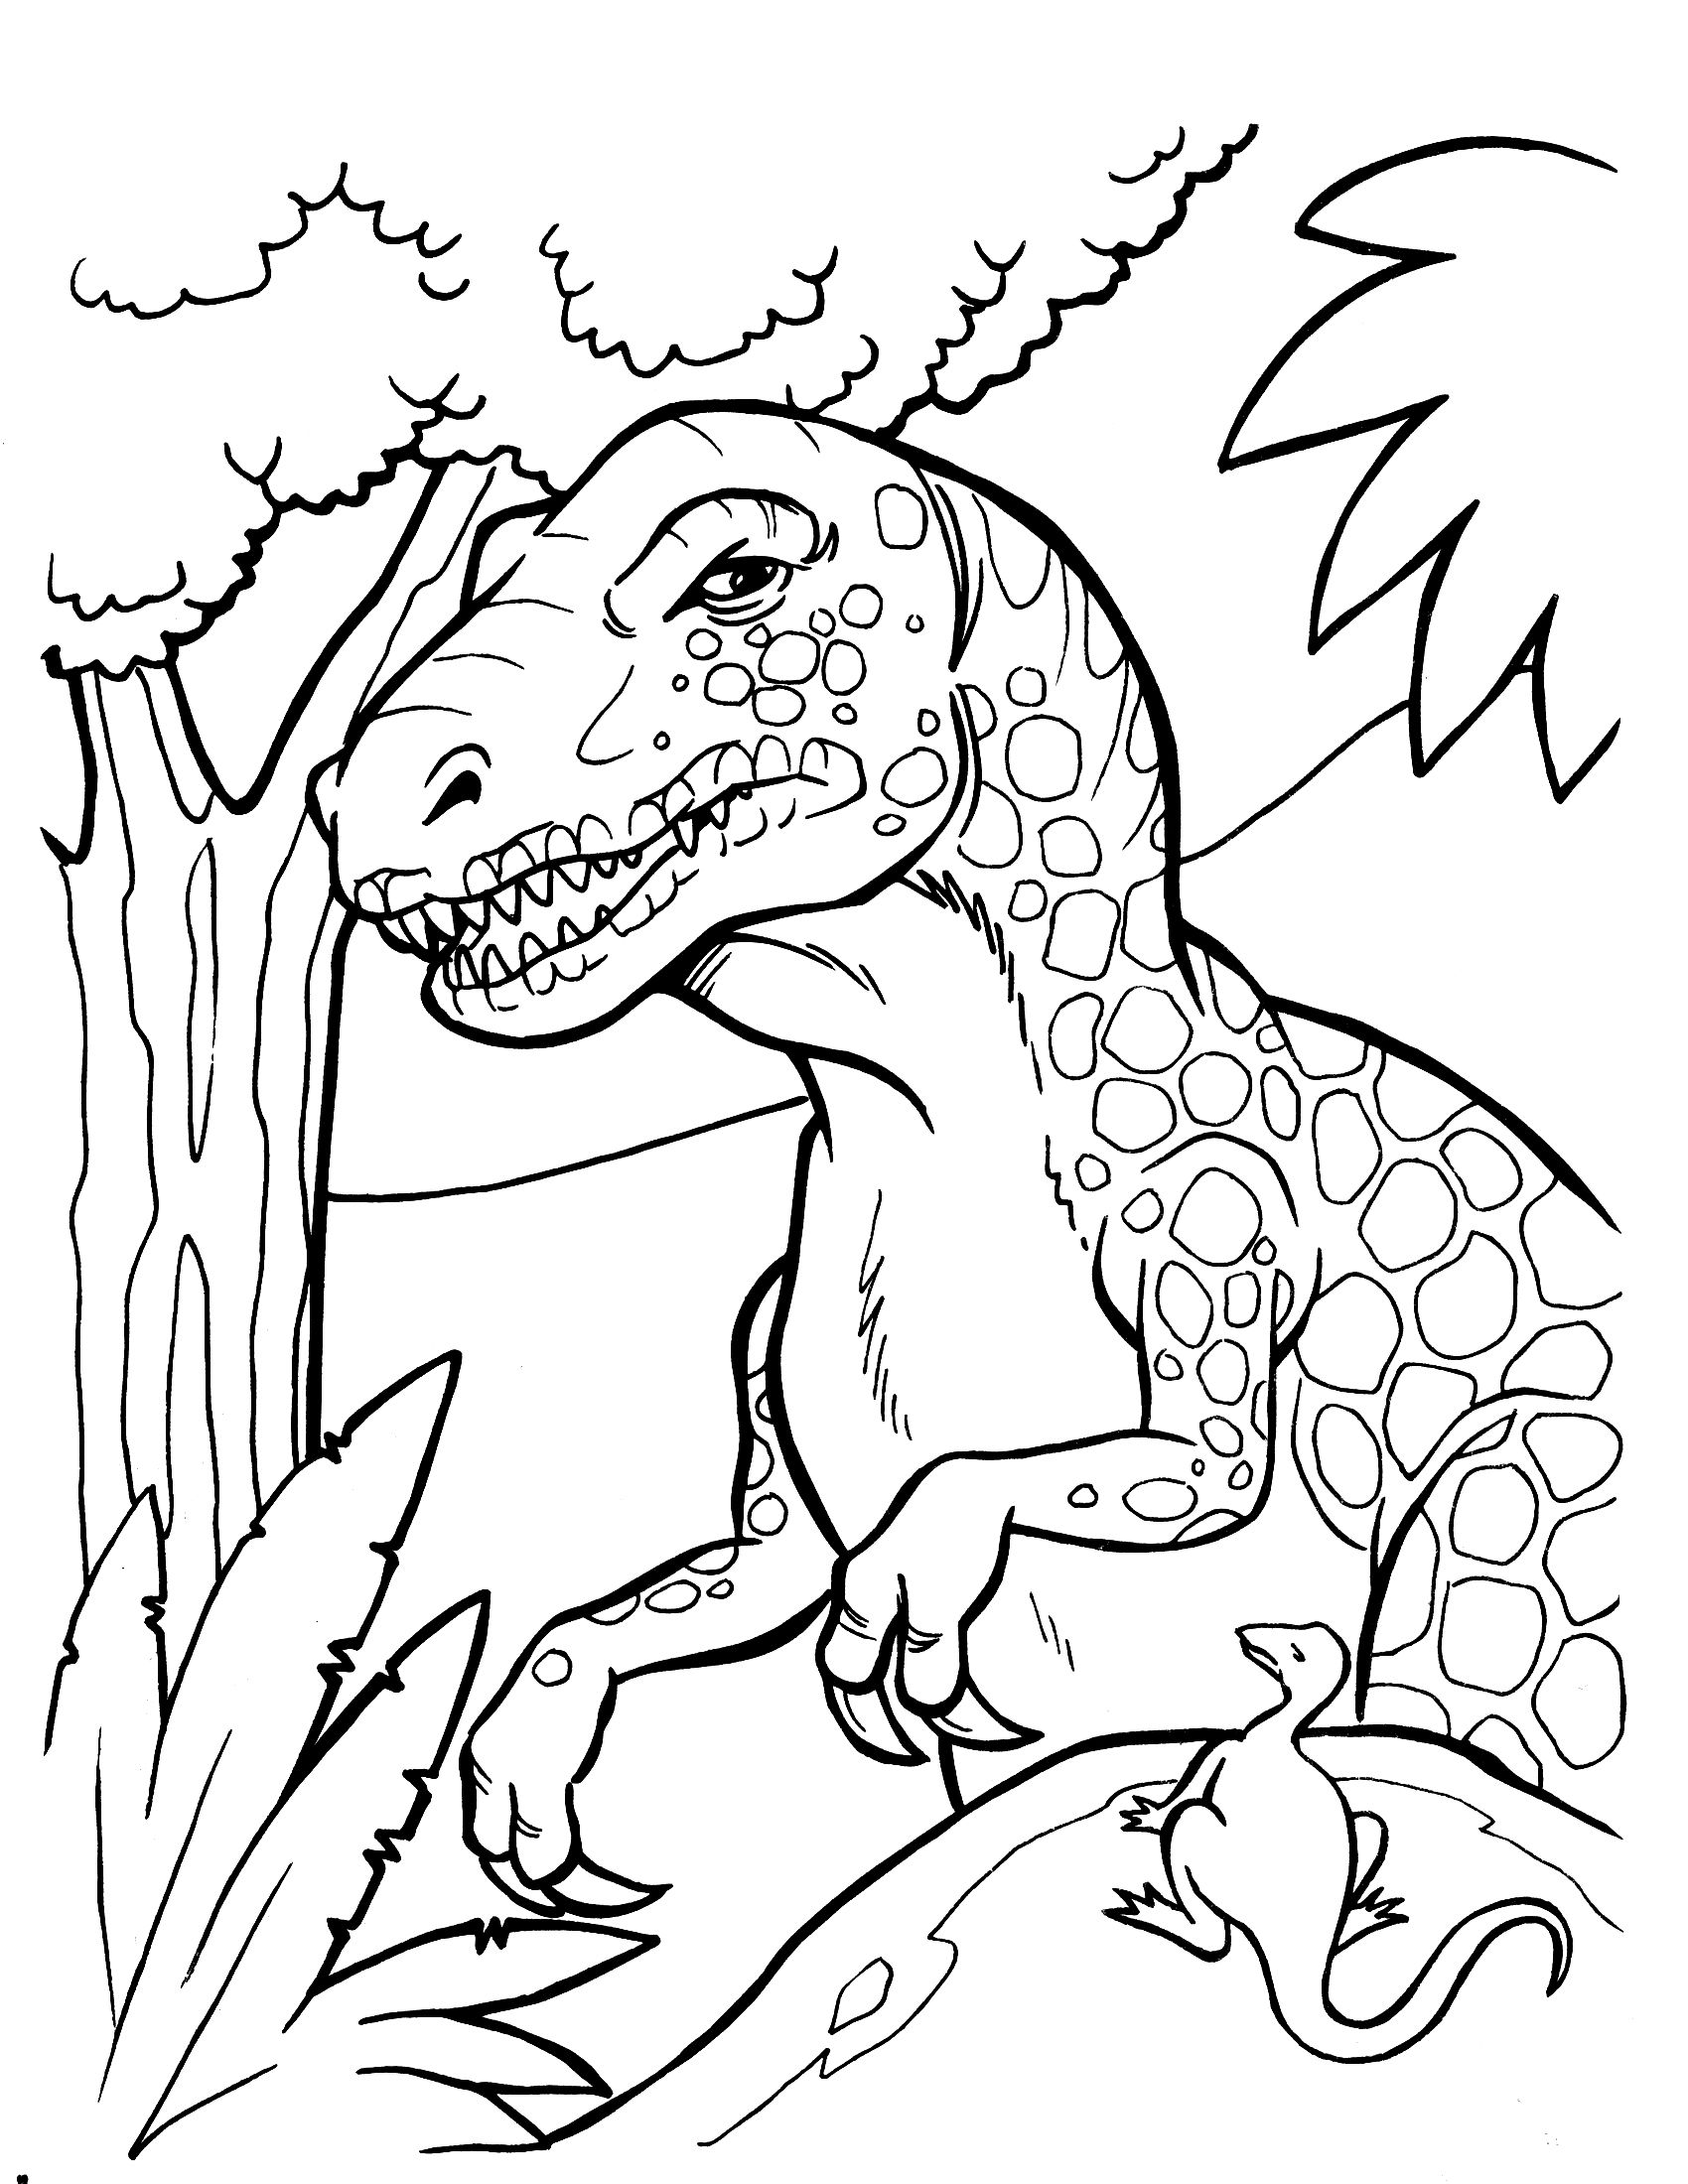 Free Printable Dinosaur Coloring Pages | Clip and Color part two ...